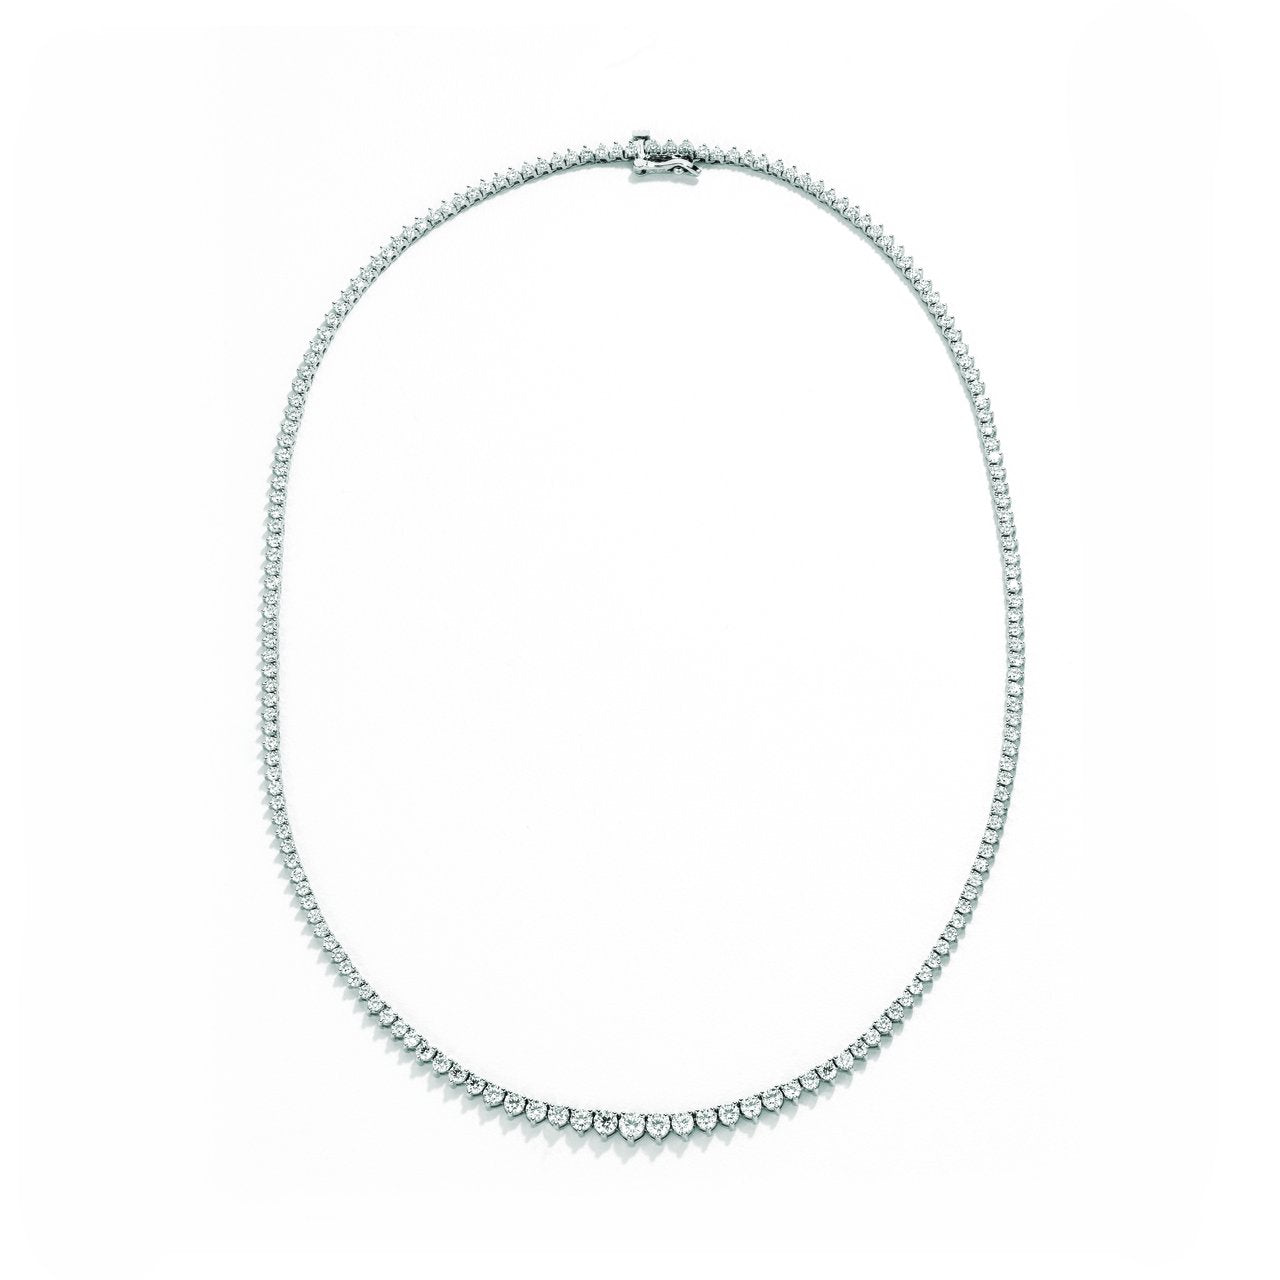 Sabel Collection 18K White Gold Graduated Diamond Necklace